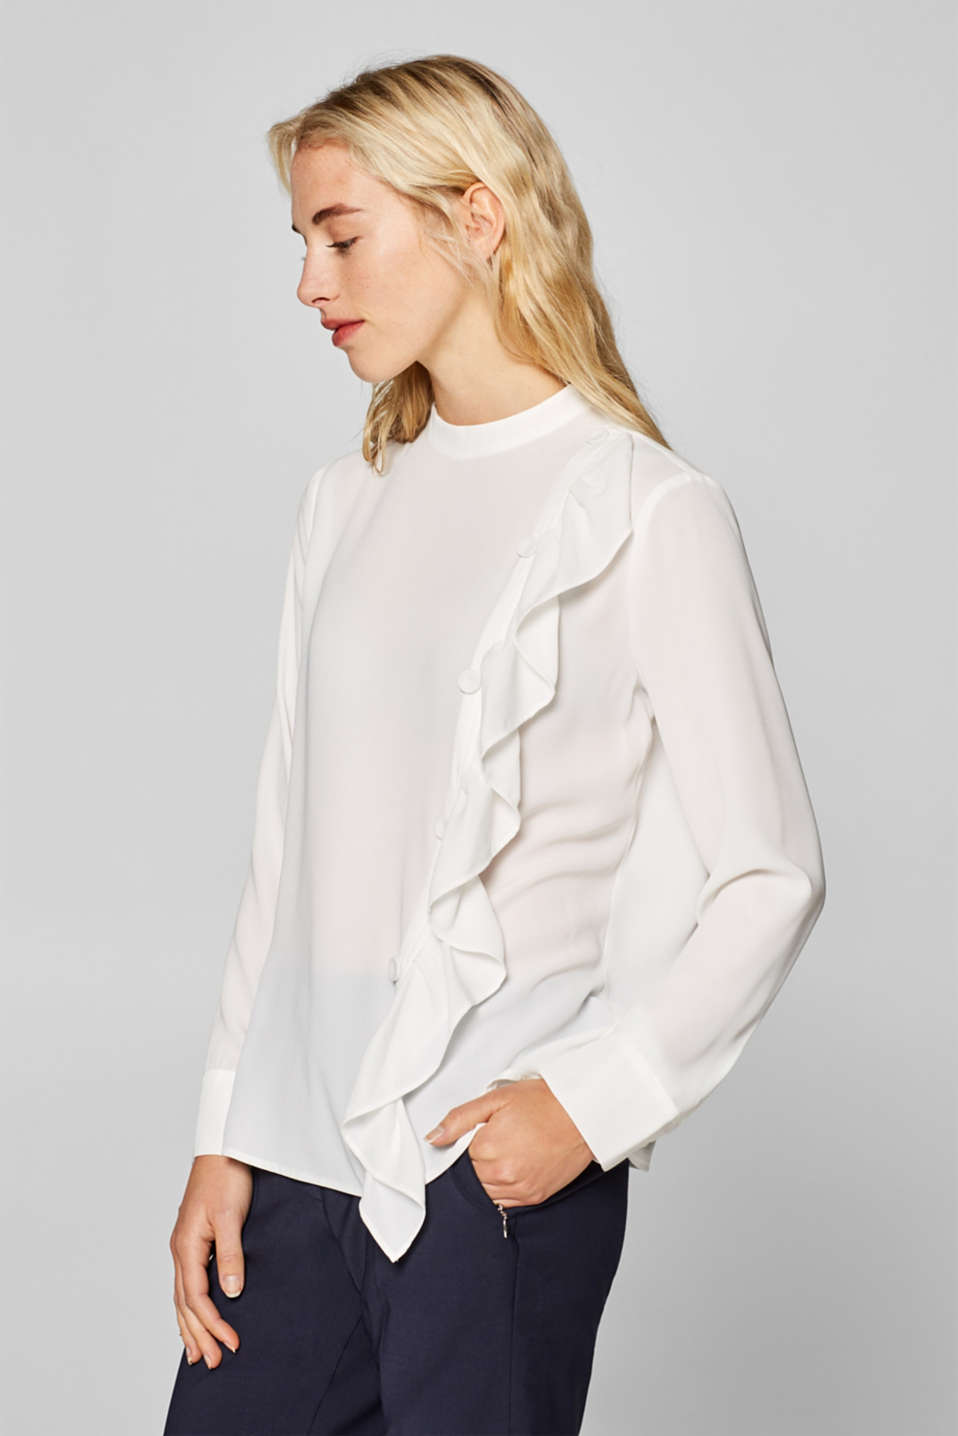 Esprit - Frill detail blouse with a decorative button placket